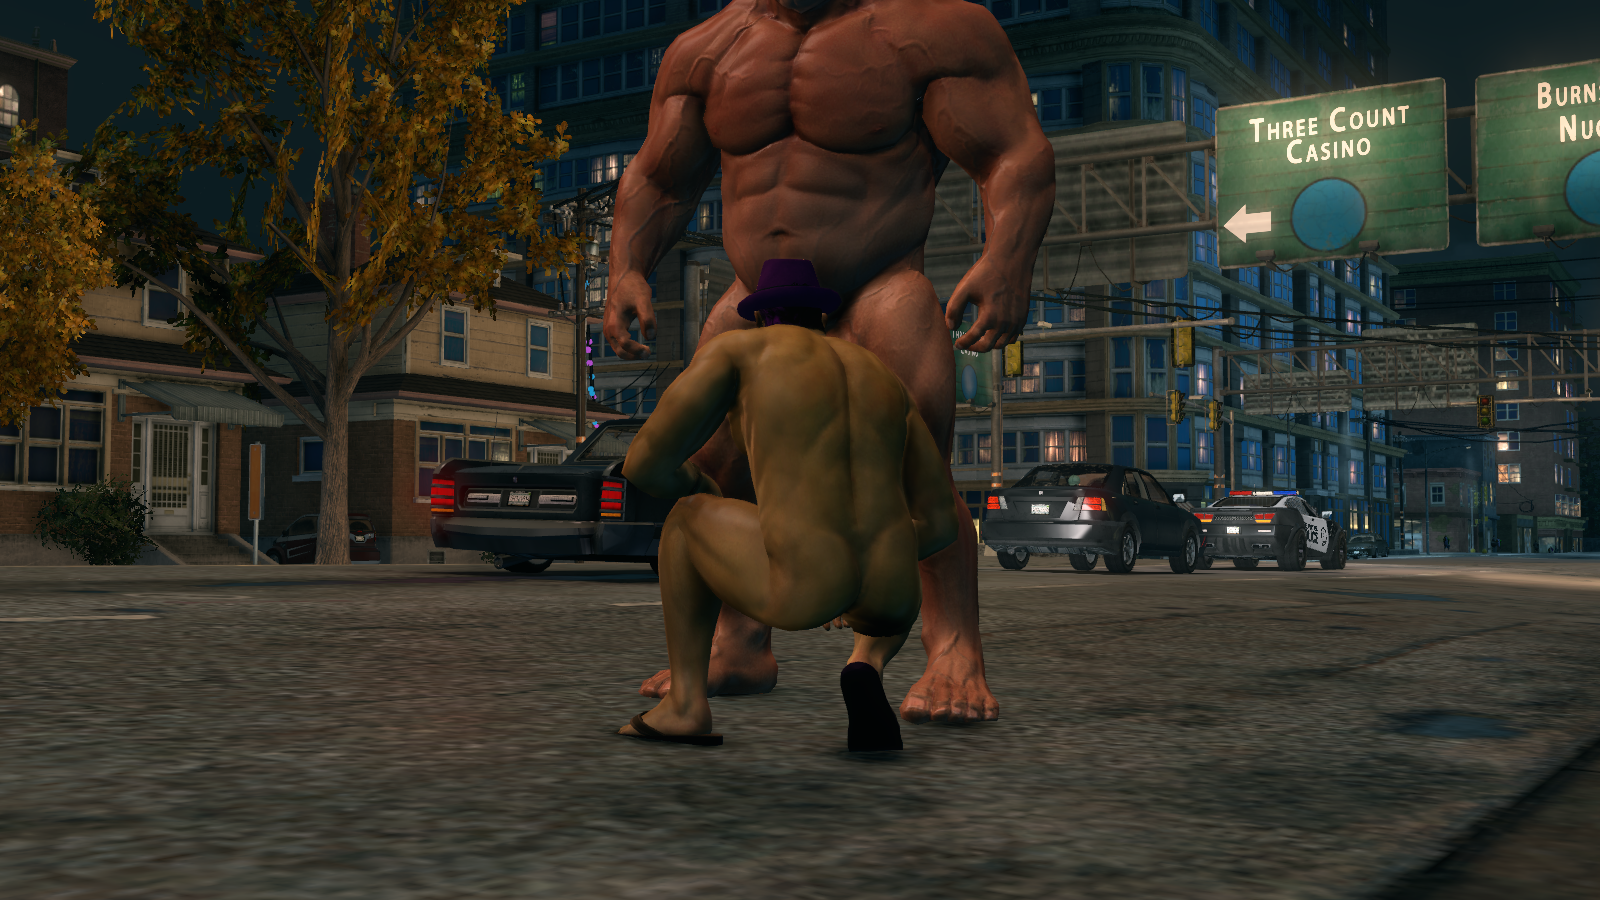 Saints row 3 porn patch erotic woman